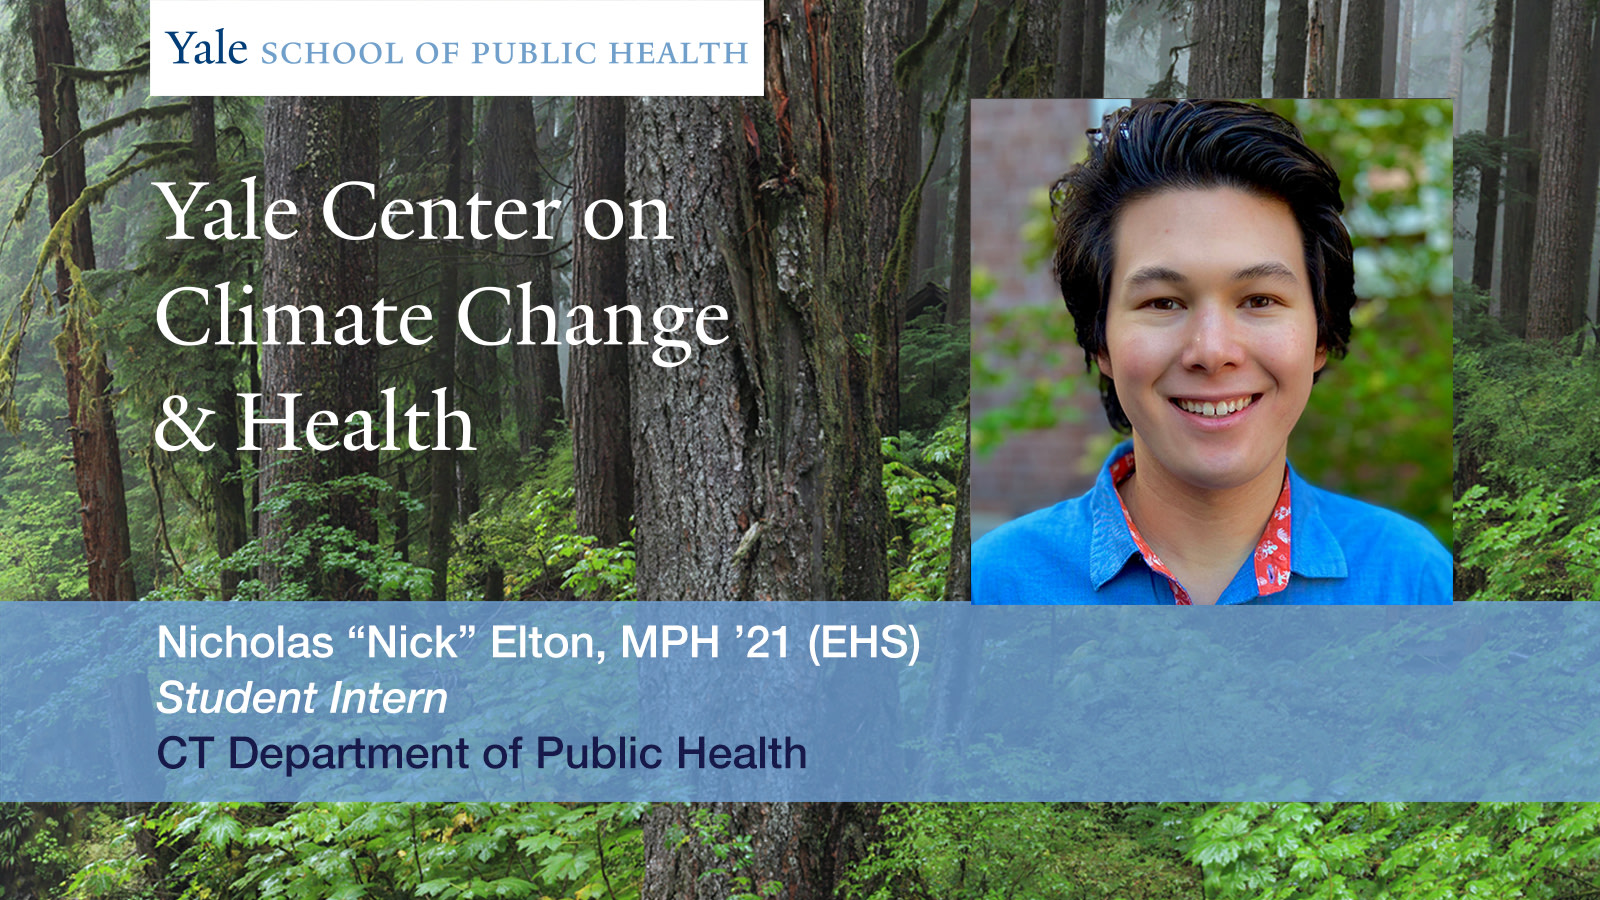 "Yale Center on Climate Change & Health summer intern Nicholas ""Nick"" Elton, MPH '21 (EHS)."